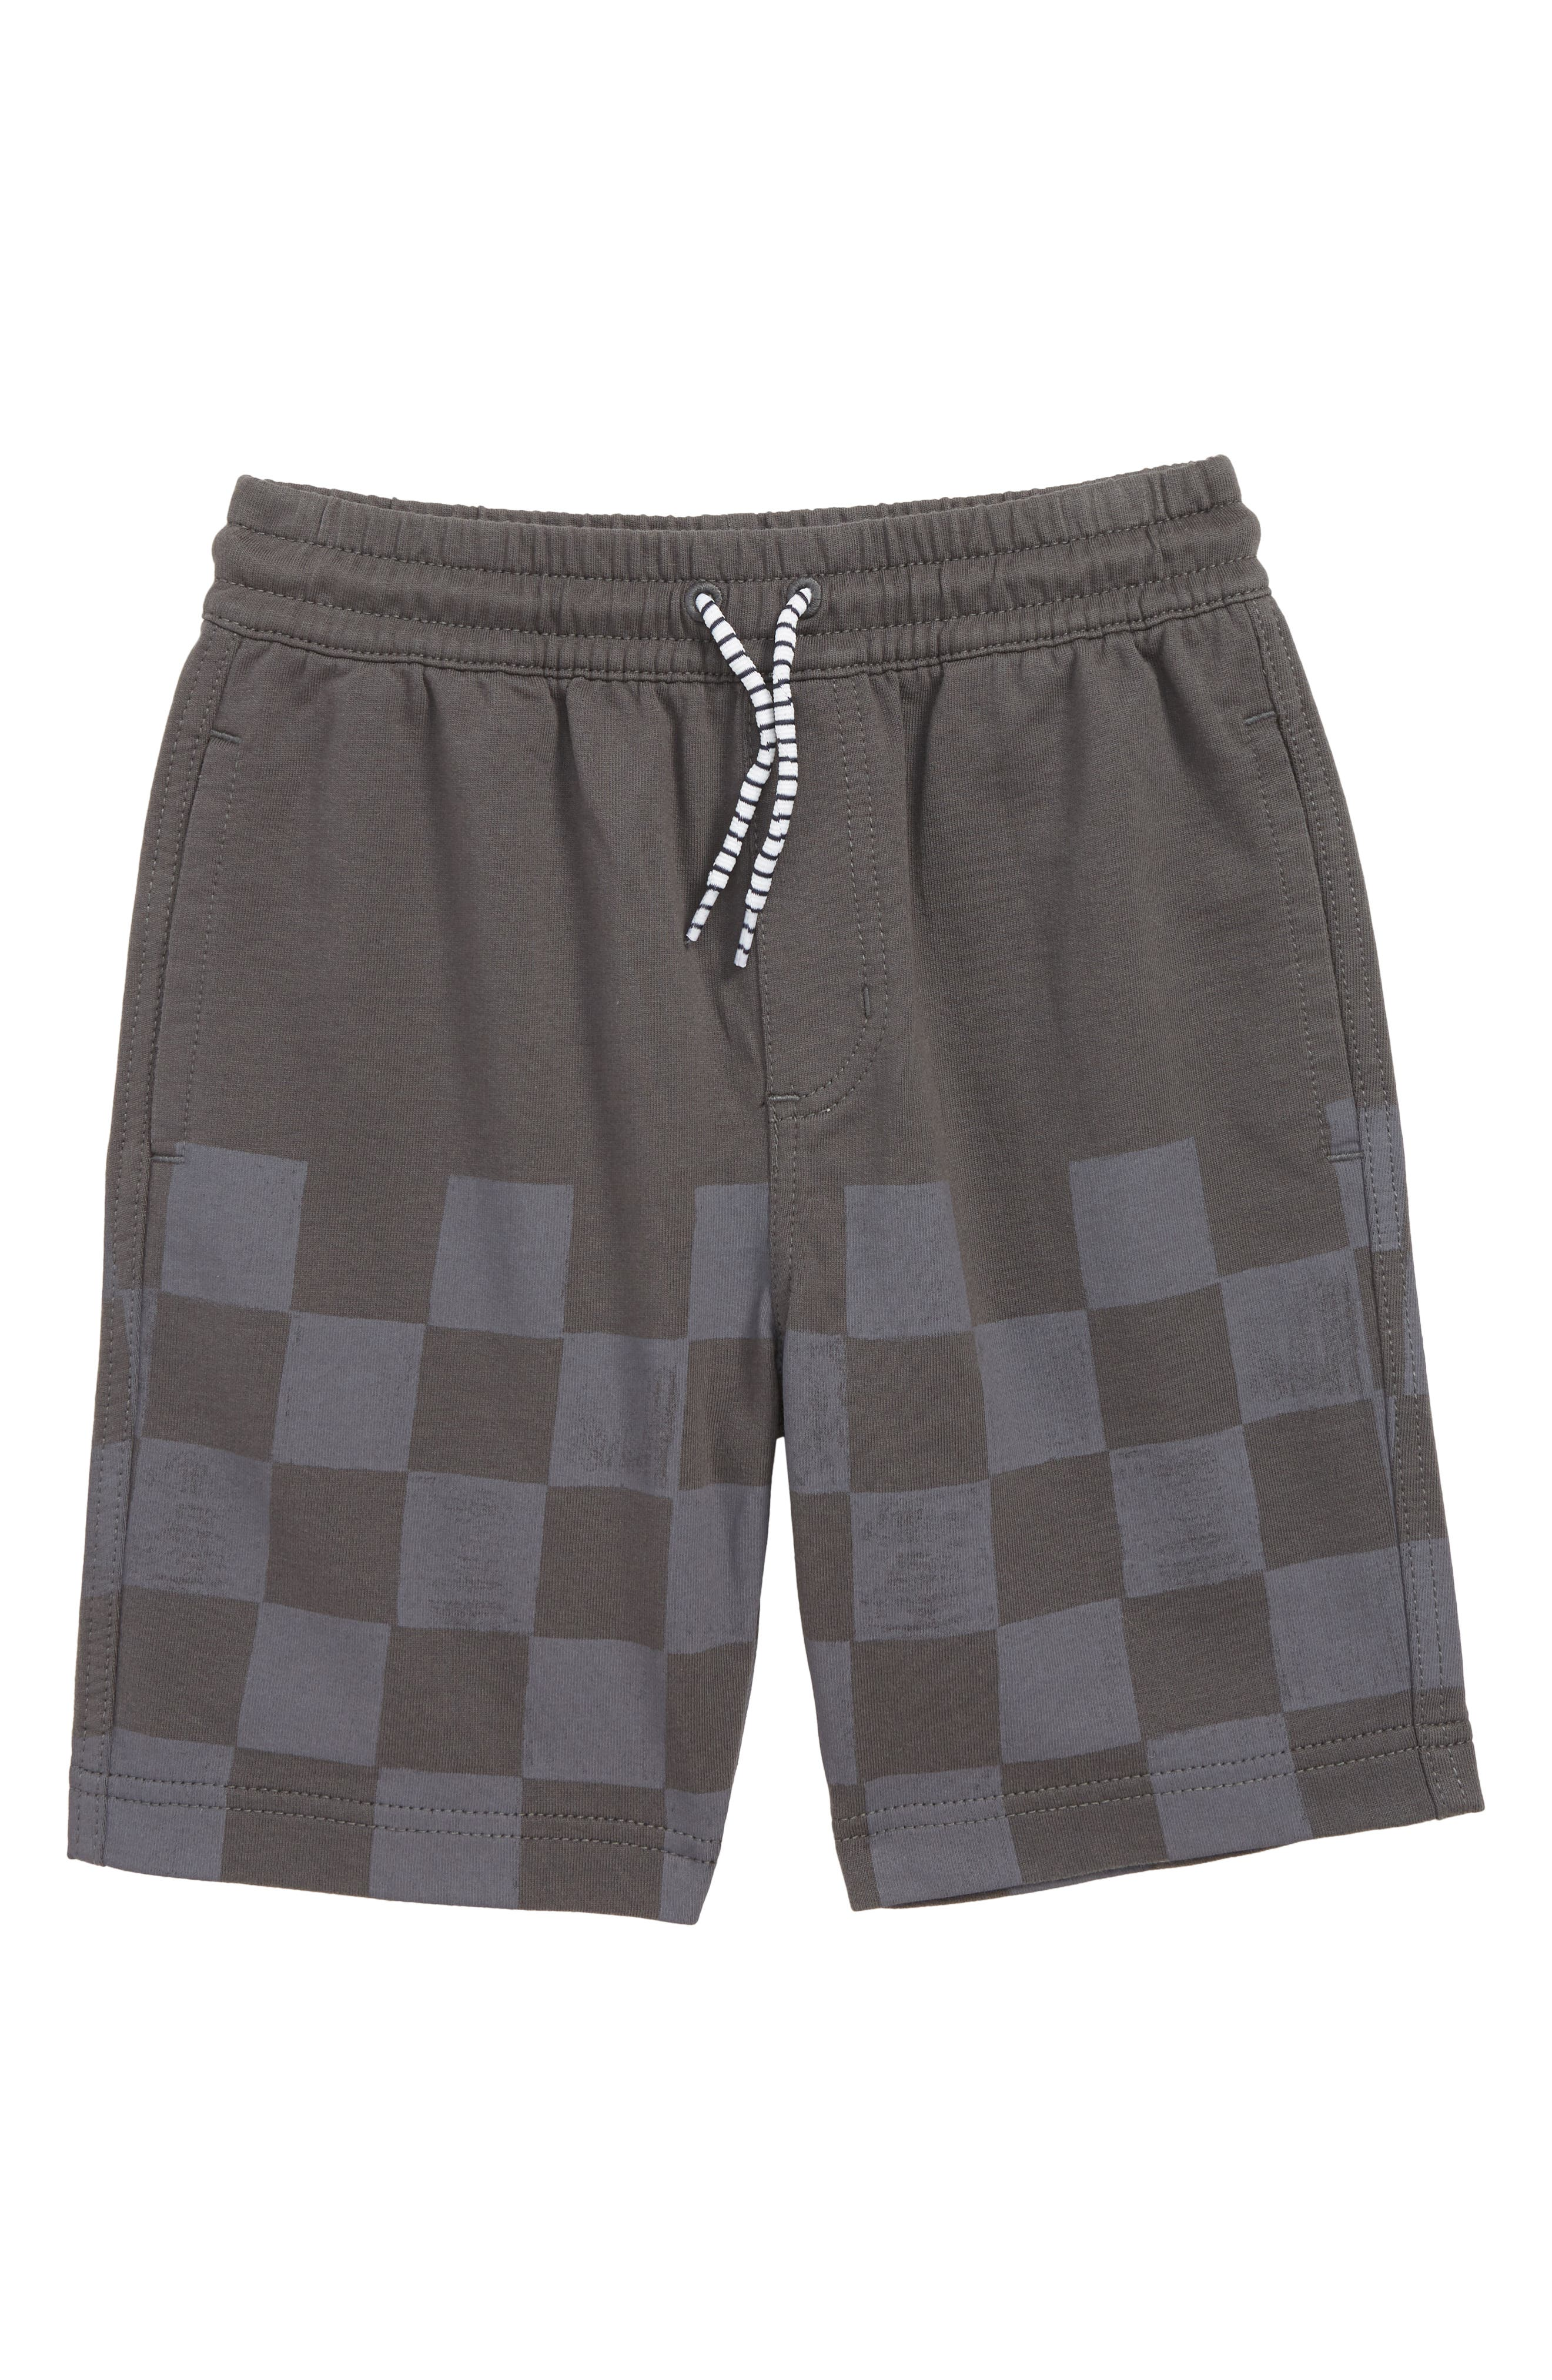 TEA COLLECTION,                             Checkered Sweat Shorts,                             Main thumbnail 1, color,                             IRON